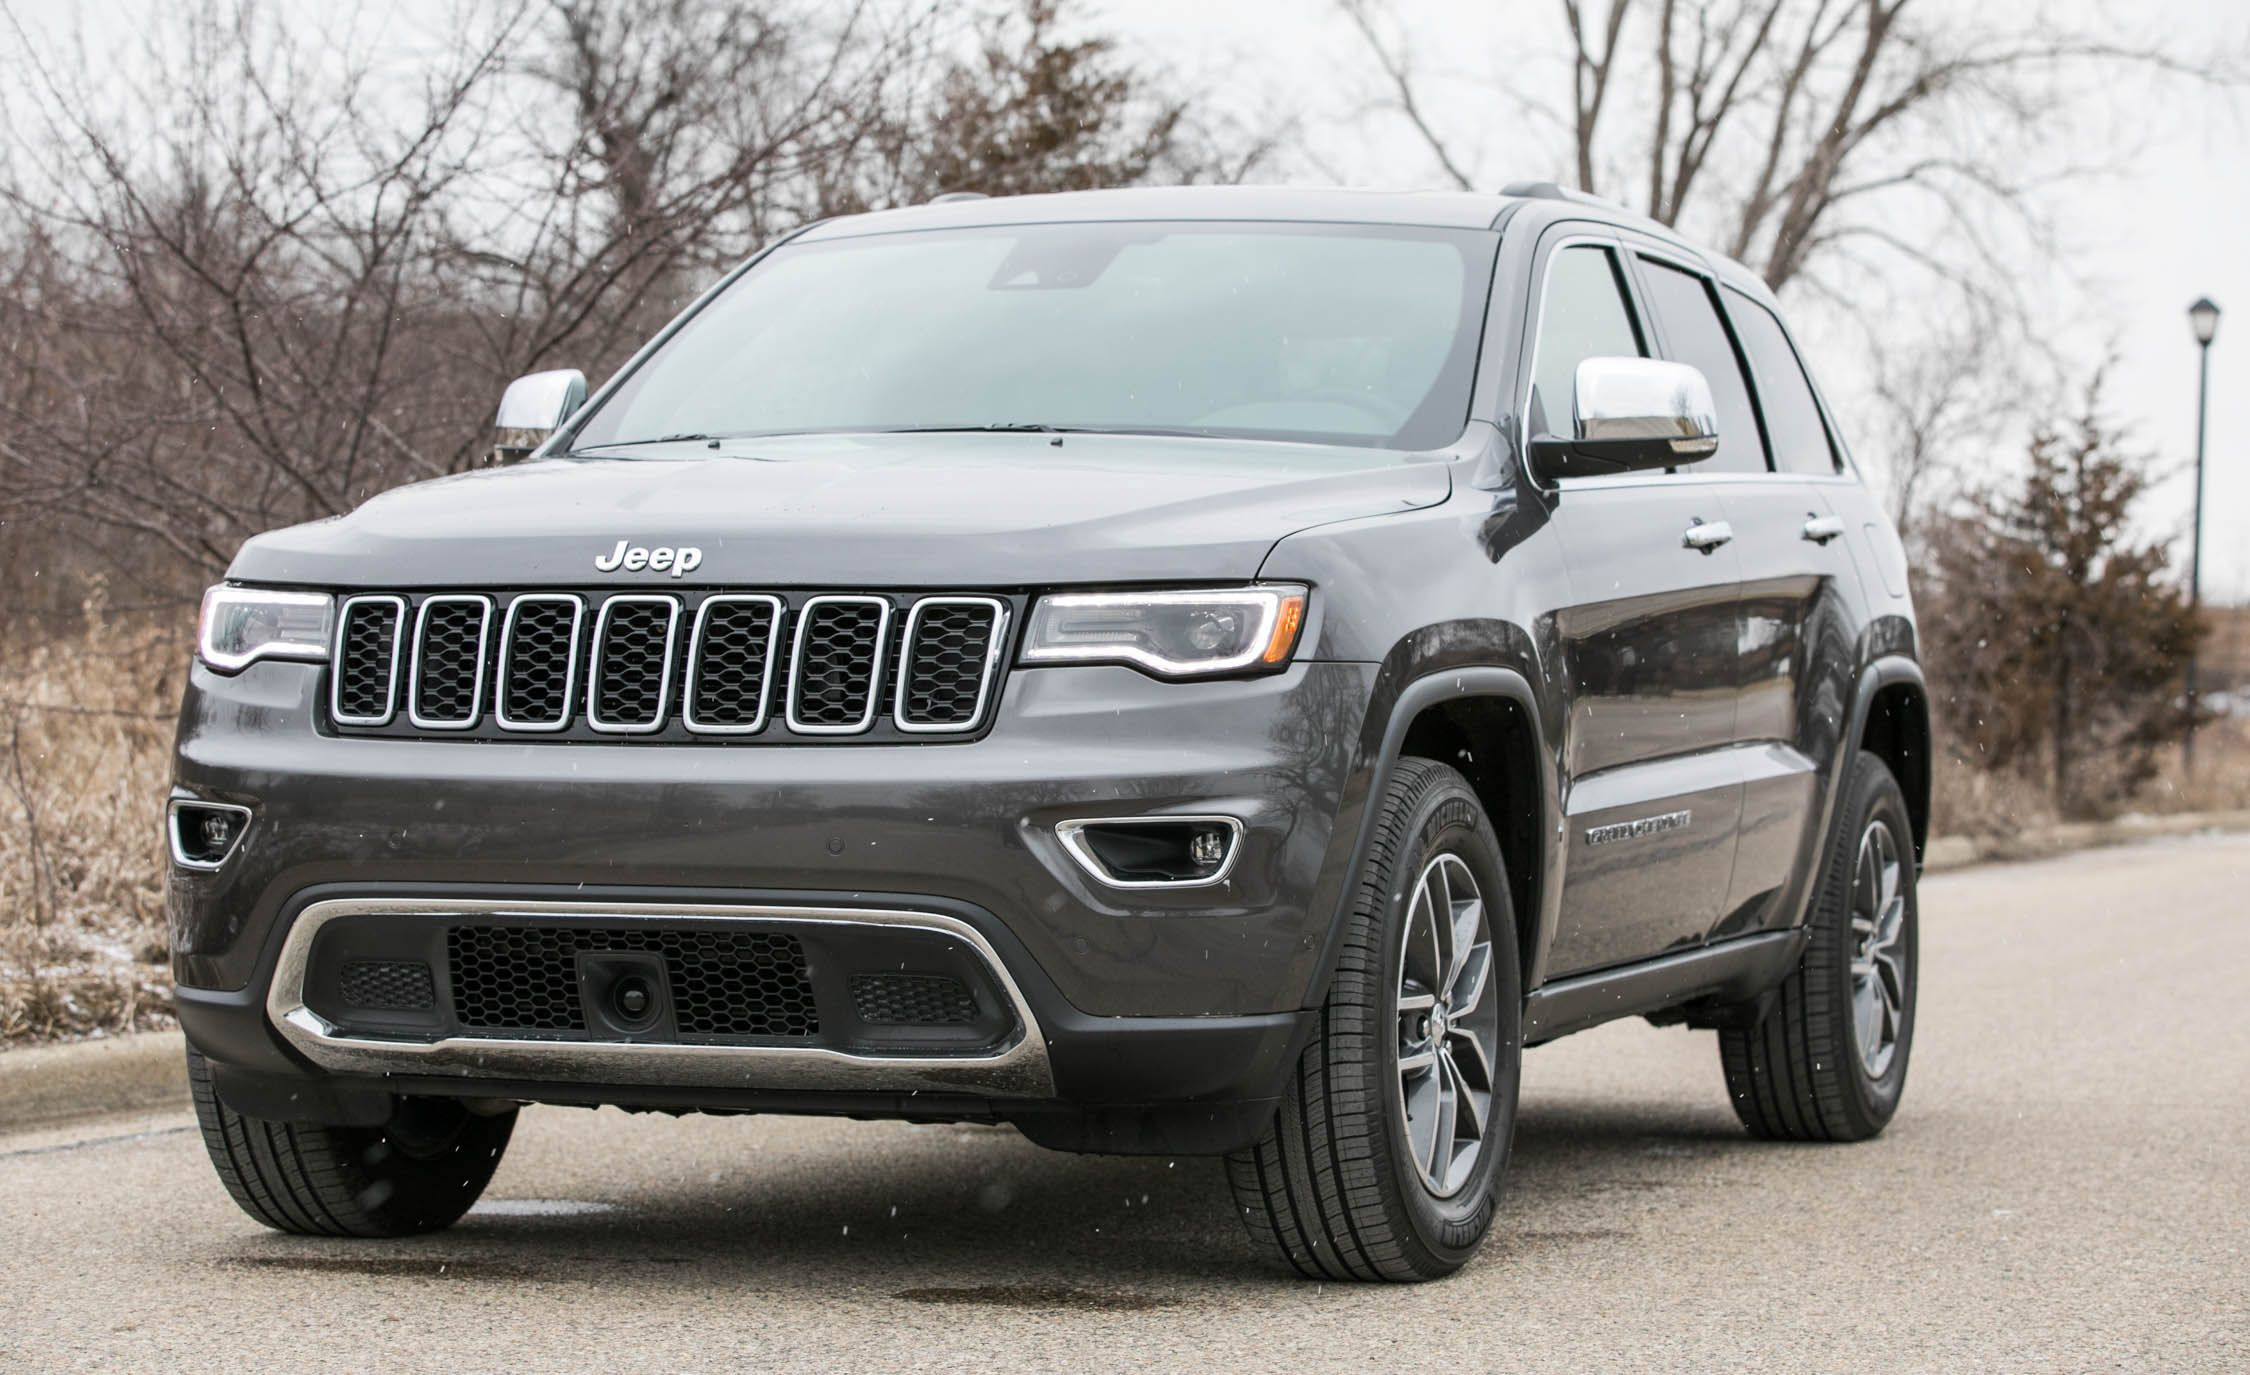 2018 jeep grand cherokee uconnect infotainment review car and driver. Black Bedroom Furniture Sets. Home Design Ideas